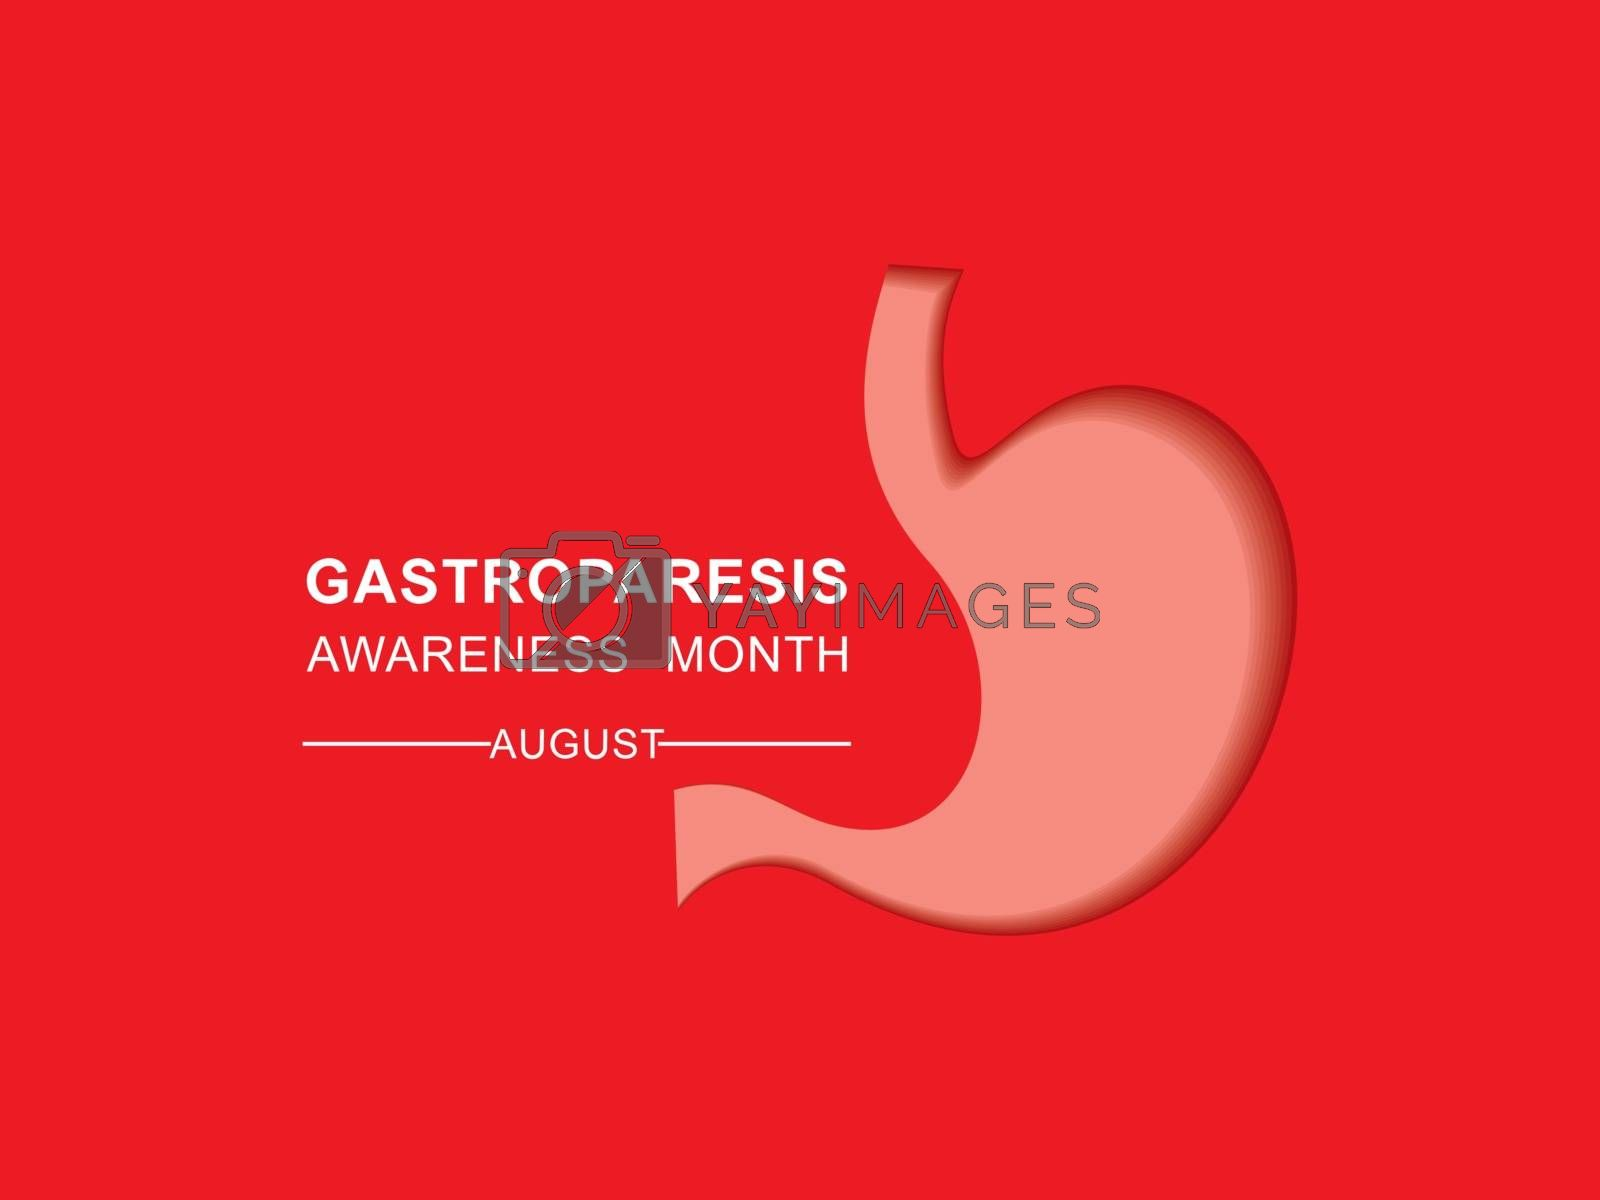 Gastroparesis Awareness Month observed in August by graphicsdunia4you